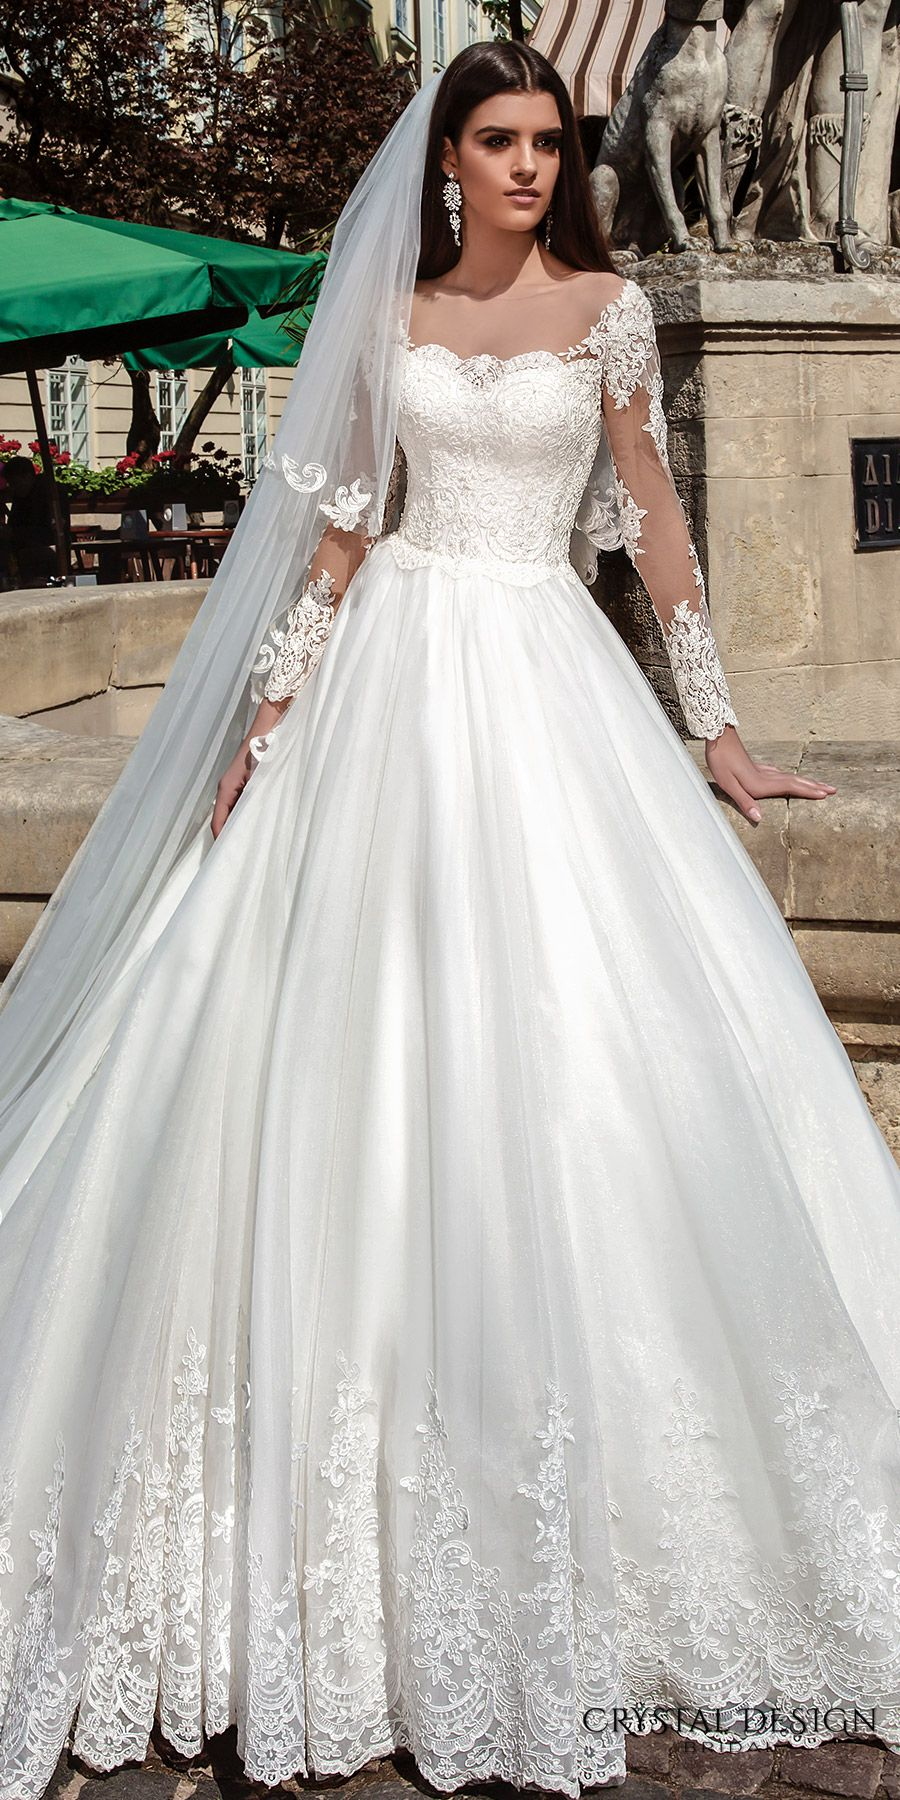 Crystal Design 2016 Wedding Dresses | 2016 wedding dresses